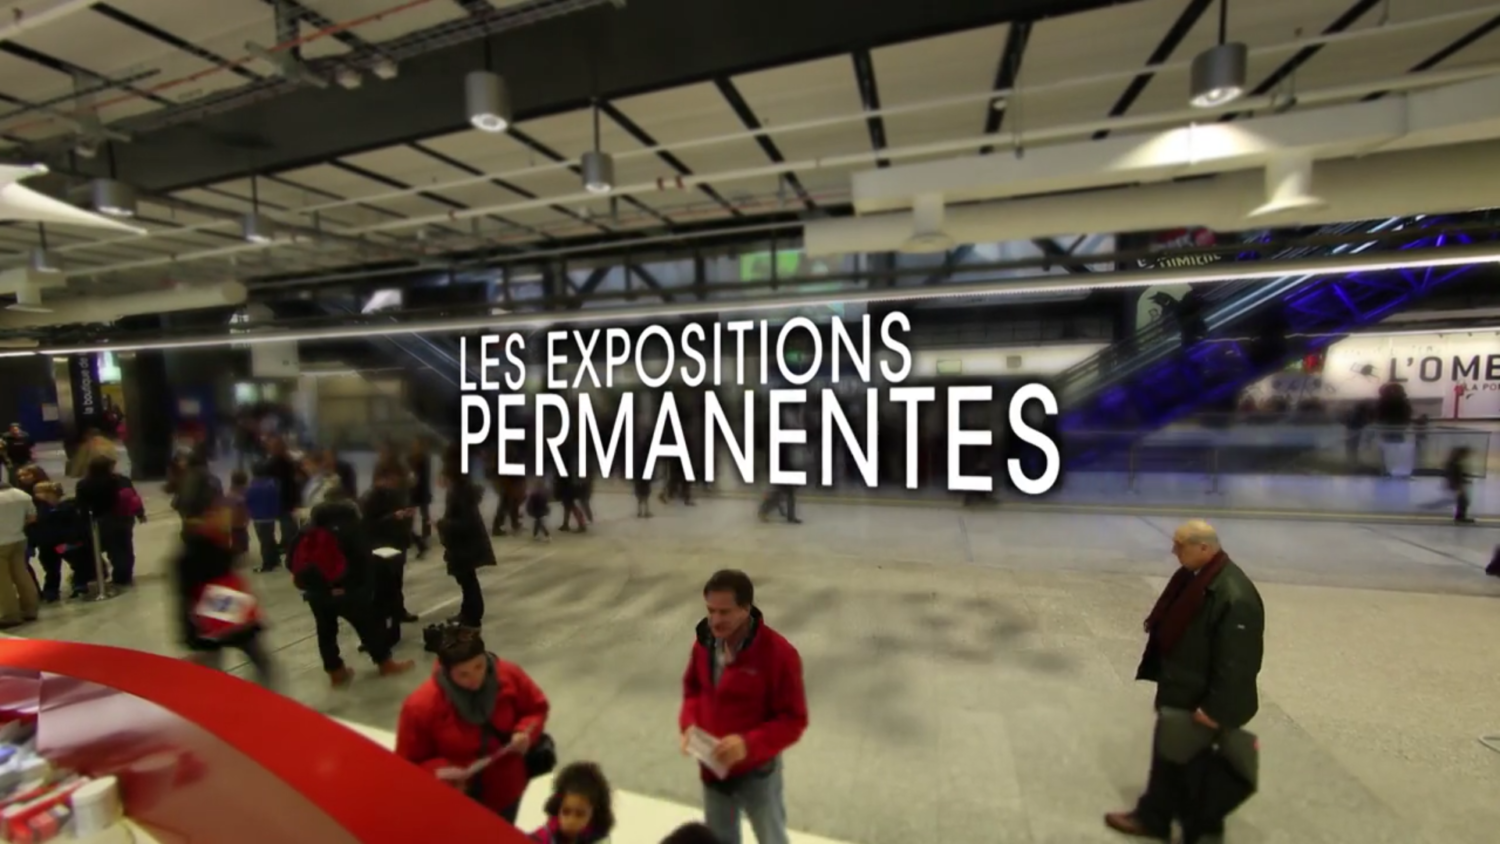 Cité des Sciences : bande-annonce des expositions permanentes film institutionnel